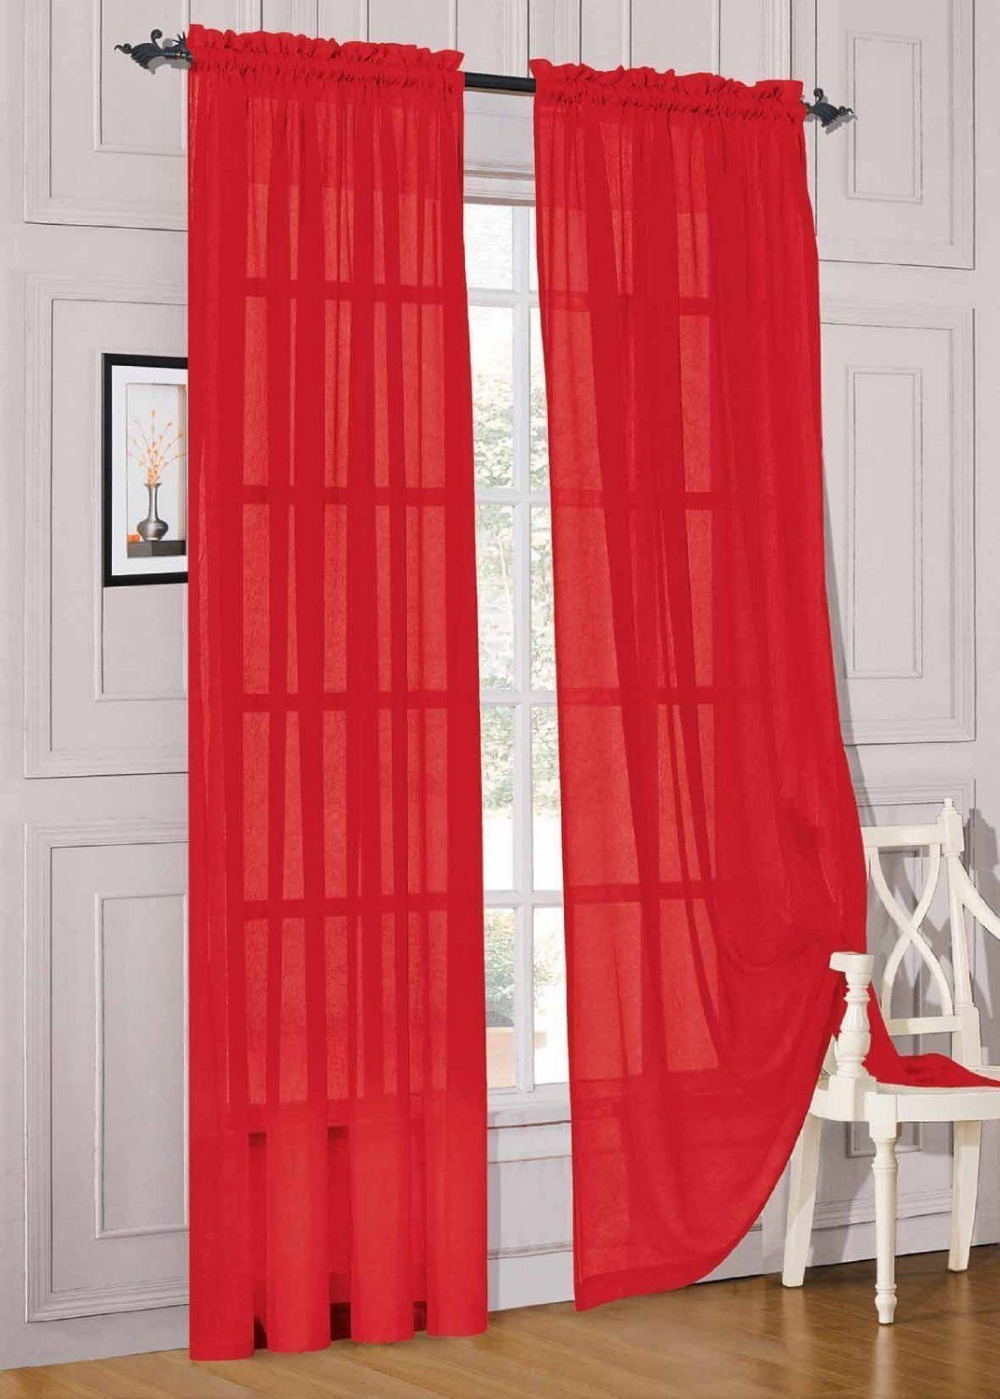 Cheap Voile Curtain Solid Window Drapes Curtains For Living Room Party Organdy Romantic 1pc